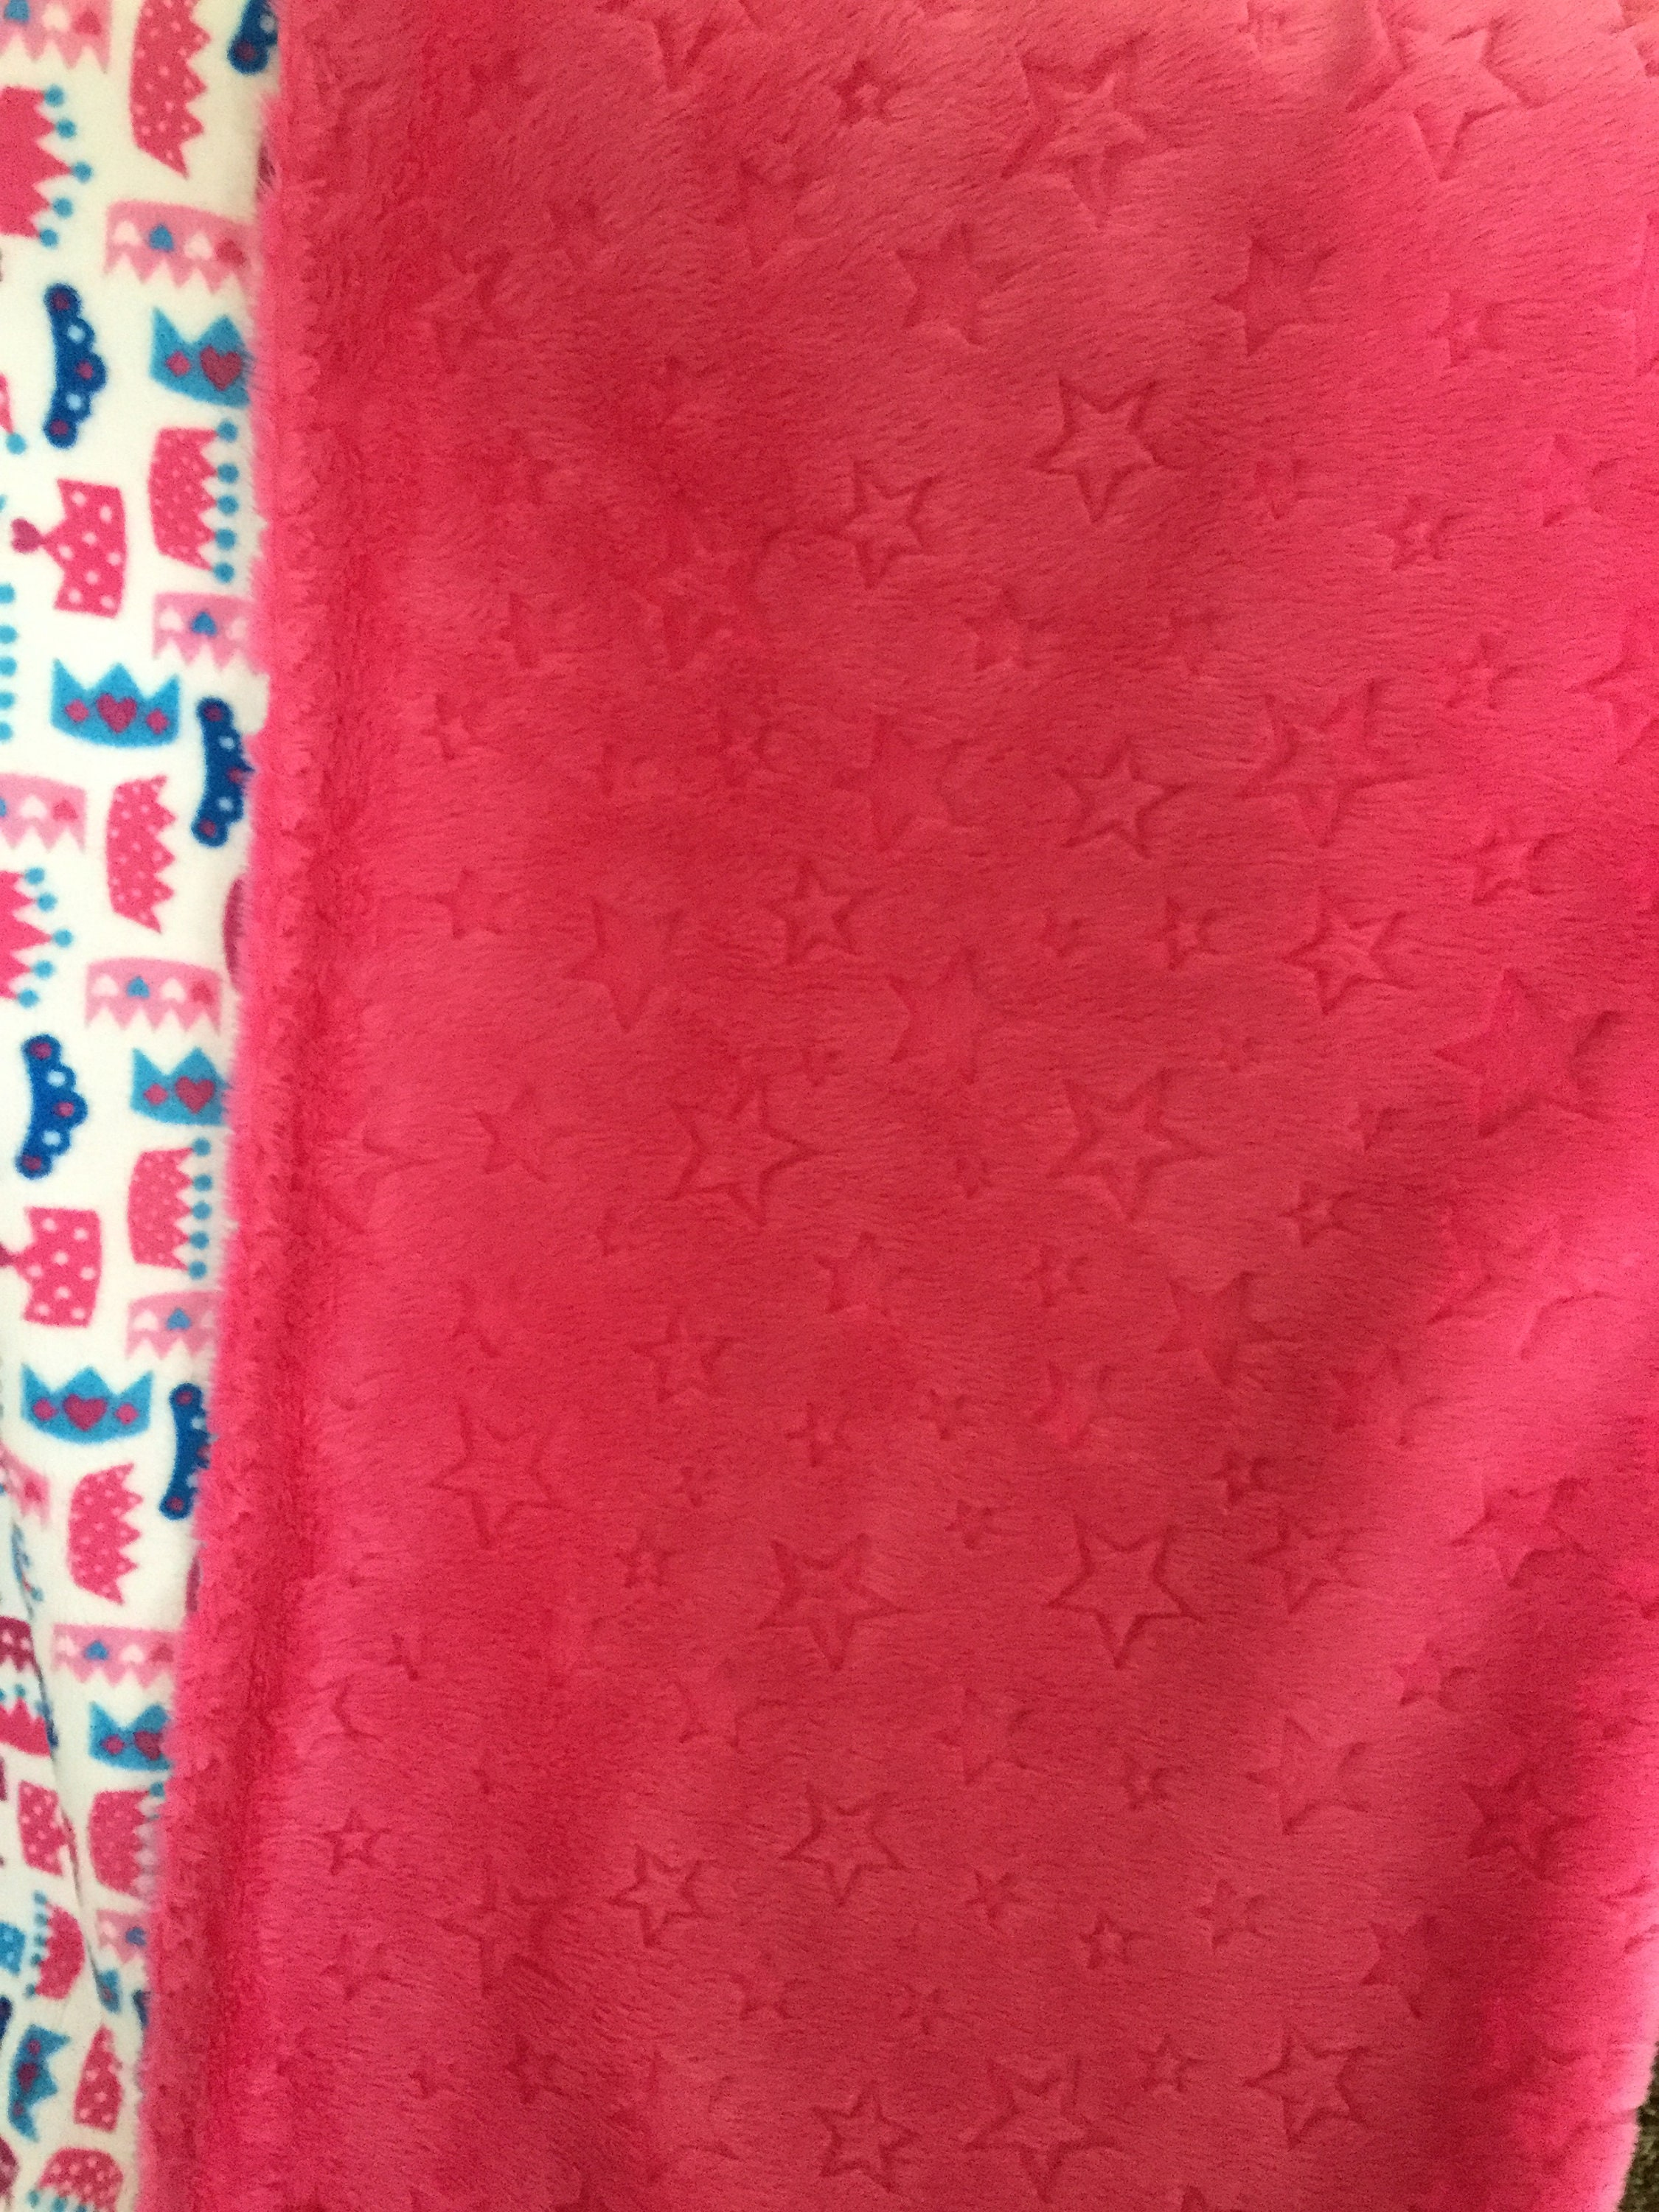 Minky Throw Large One Yard Adult/Teen/Child Blanket Cuddle Soft Pretty Princess - Cuddle Soft Stars Doubled Sided Soft Minky Blanket